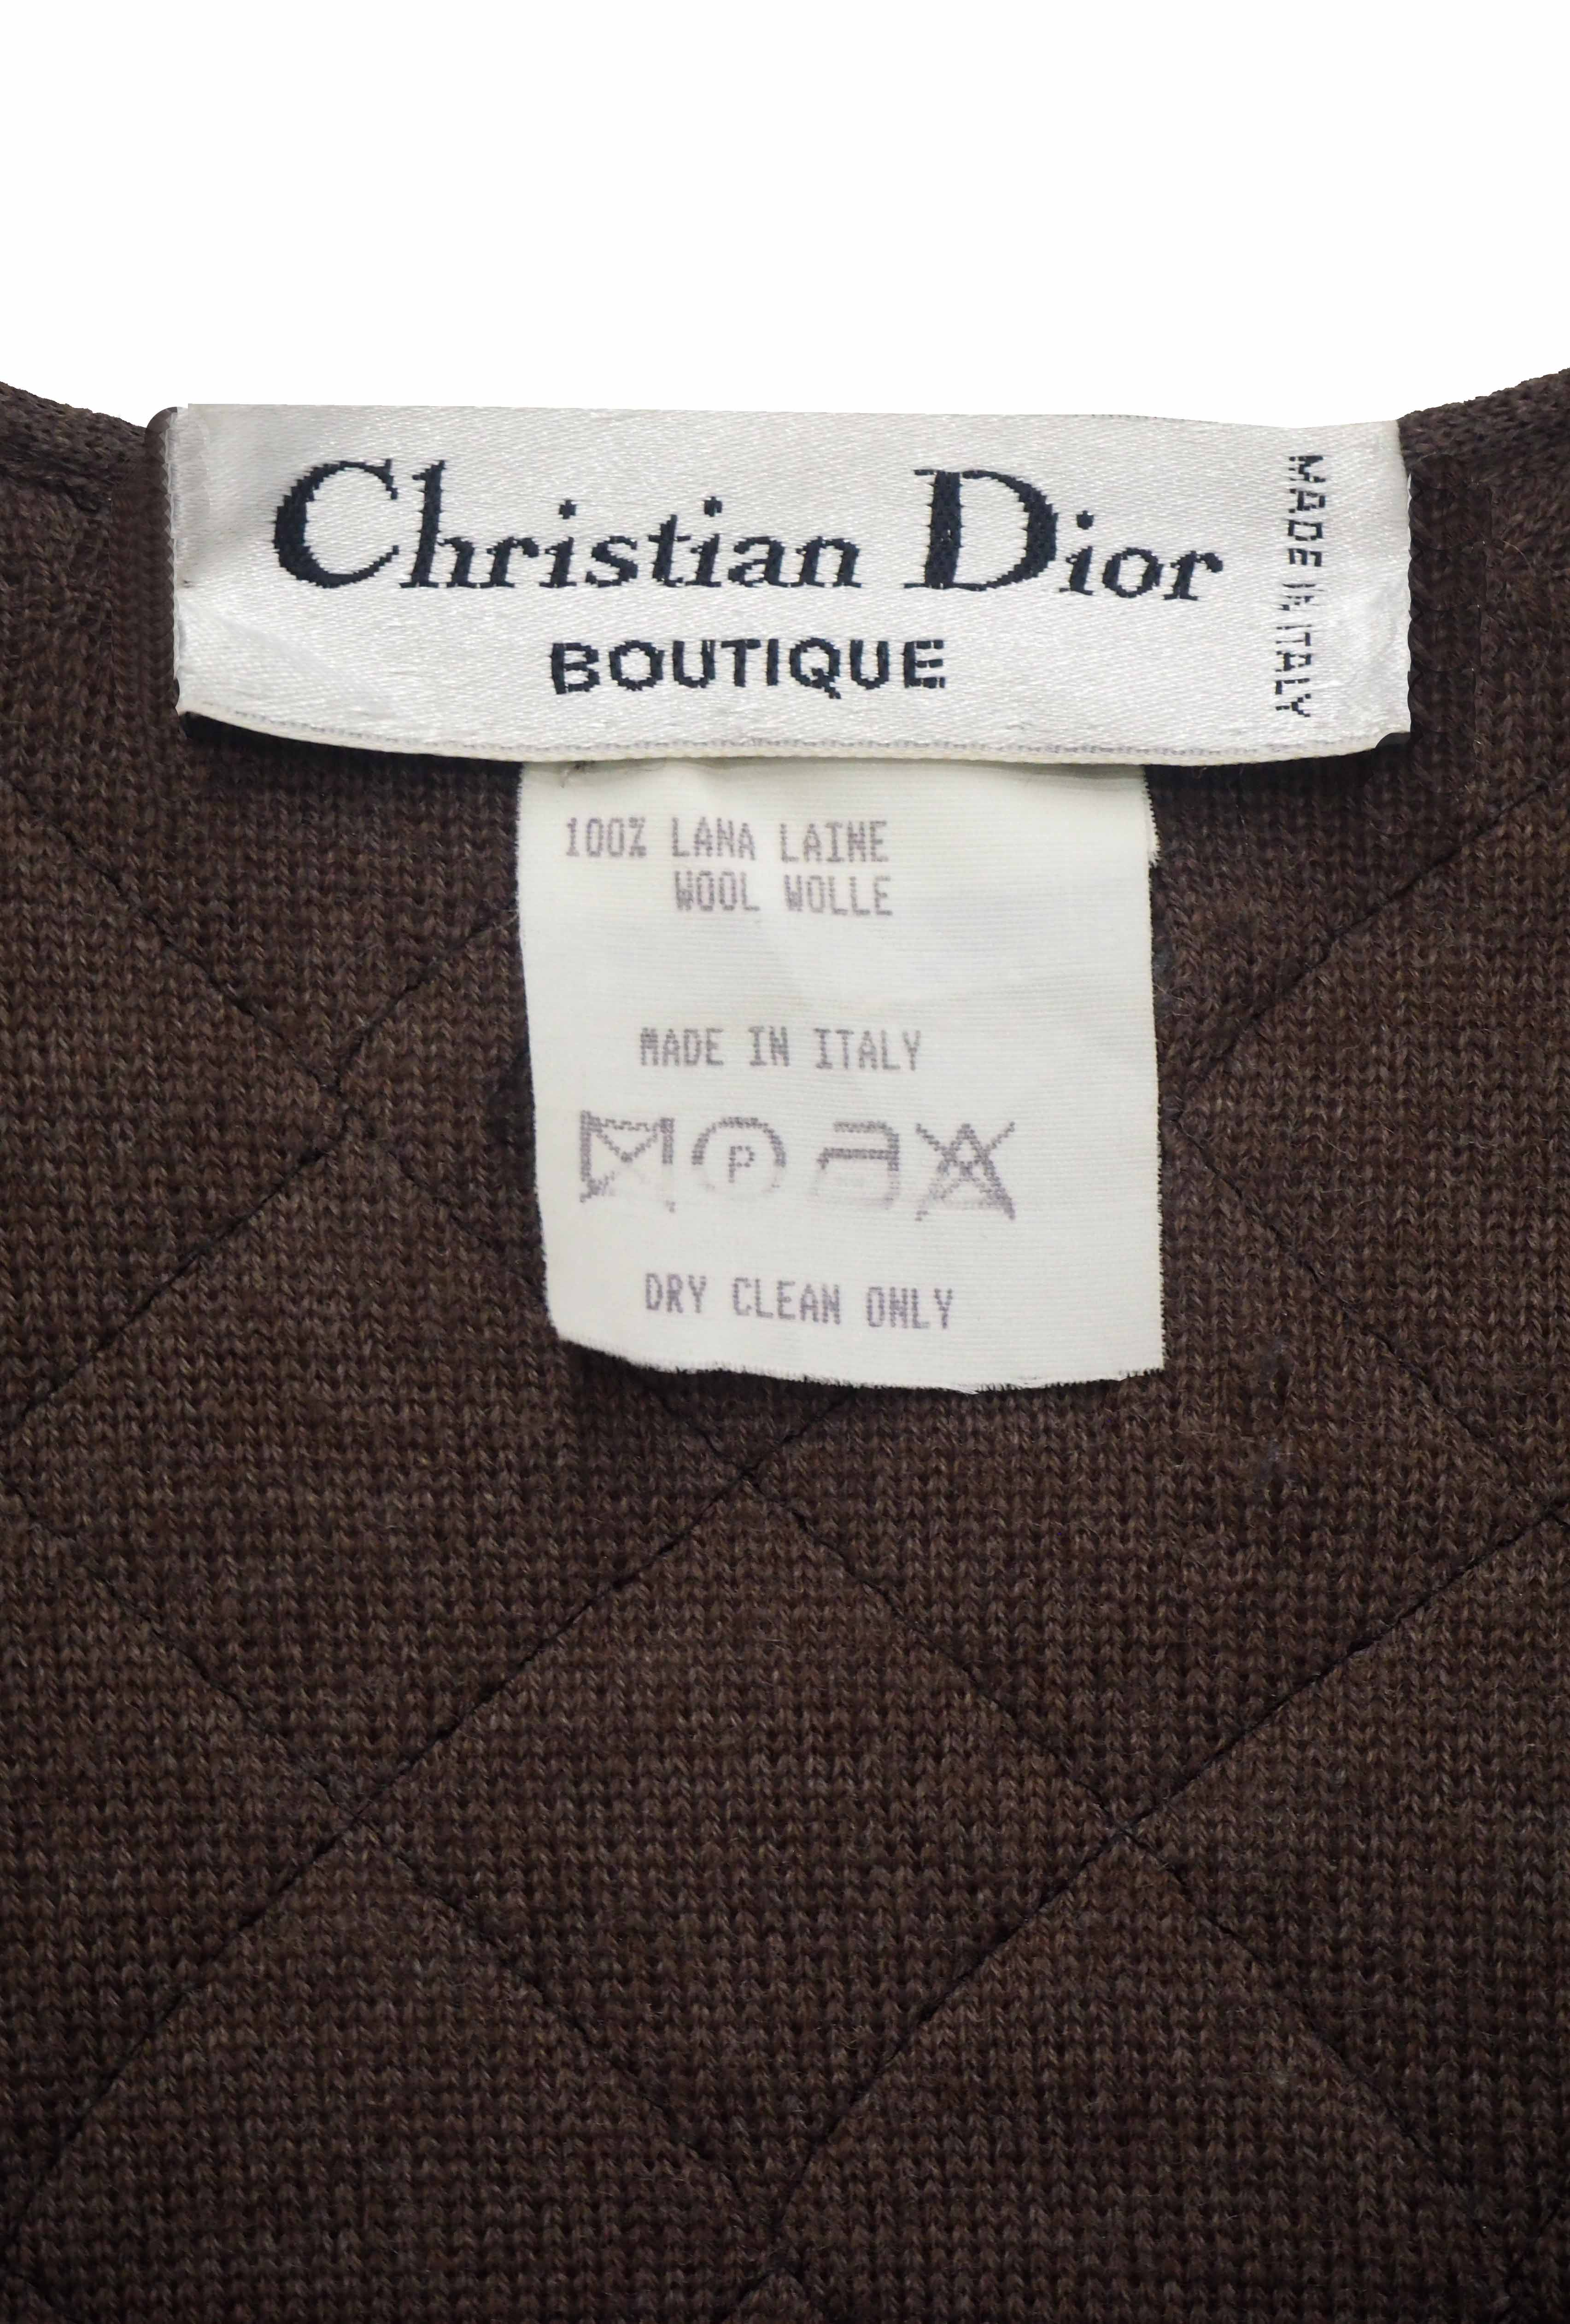 Late 1970s Christian Dior